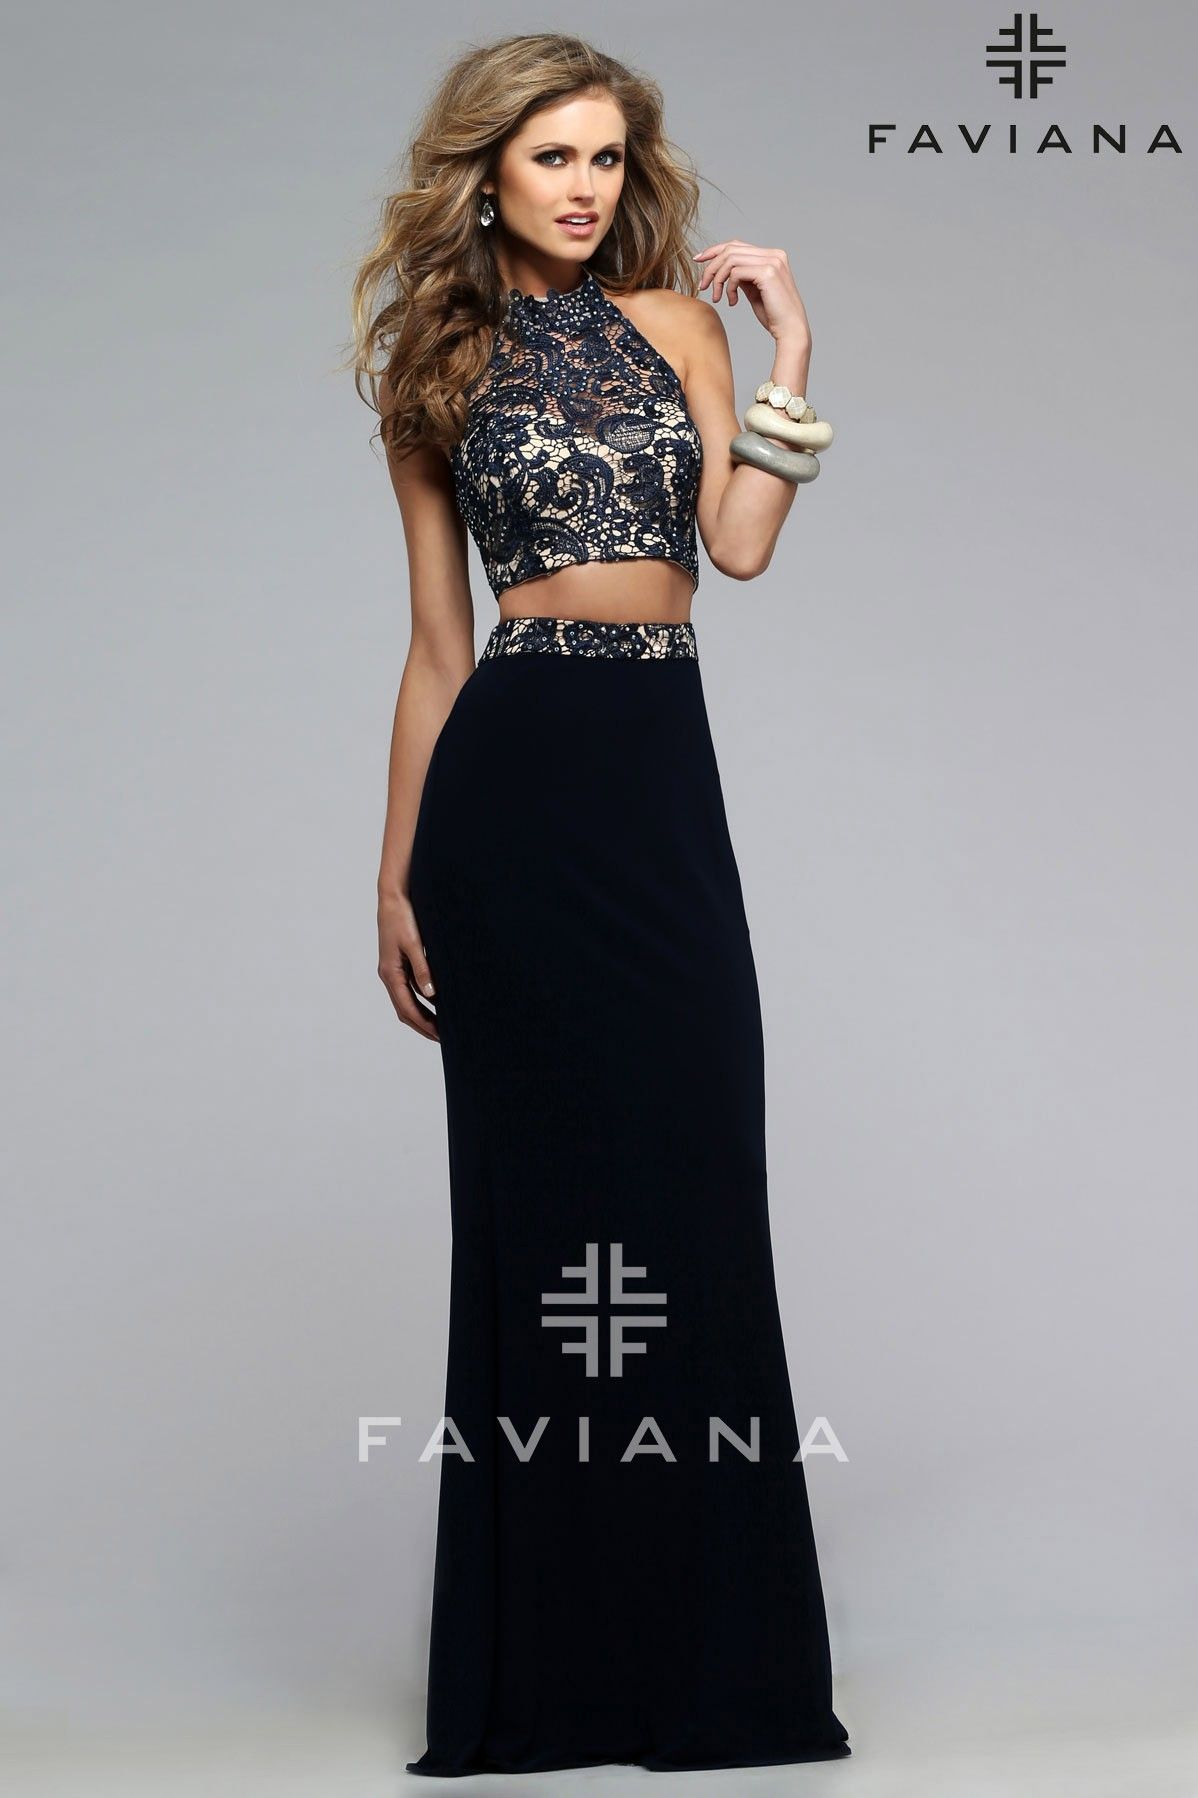 Twopiece lace evening dress with high neck faviana style